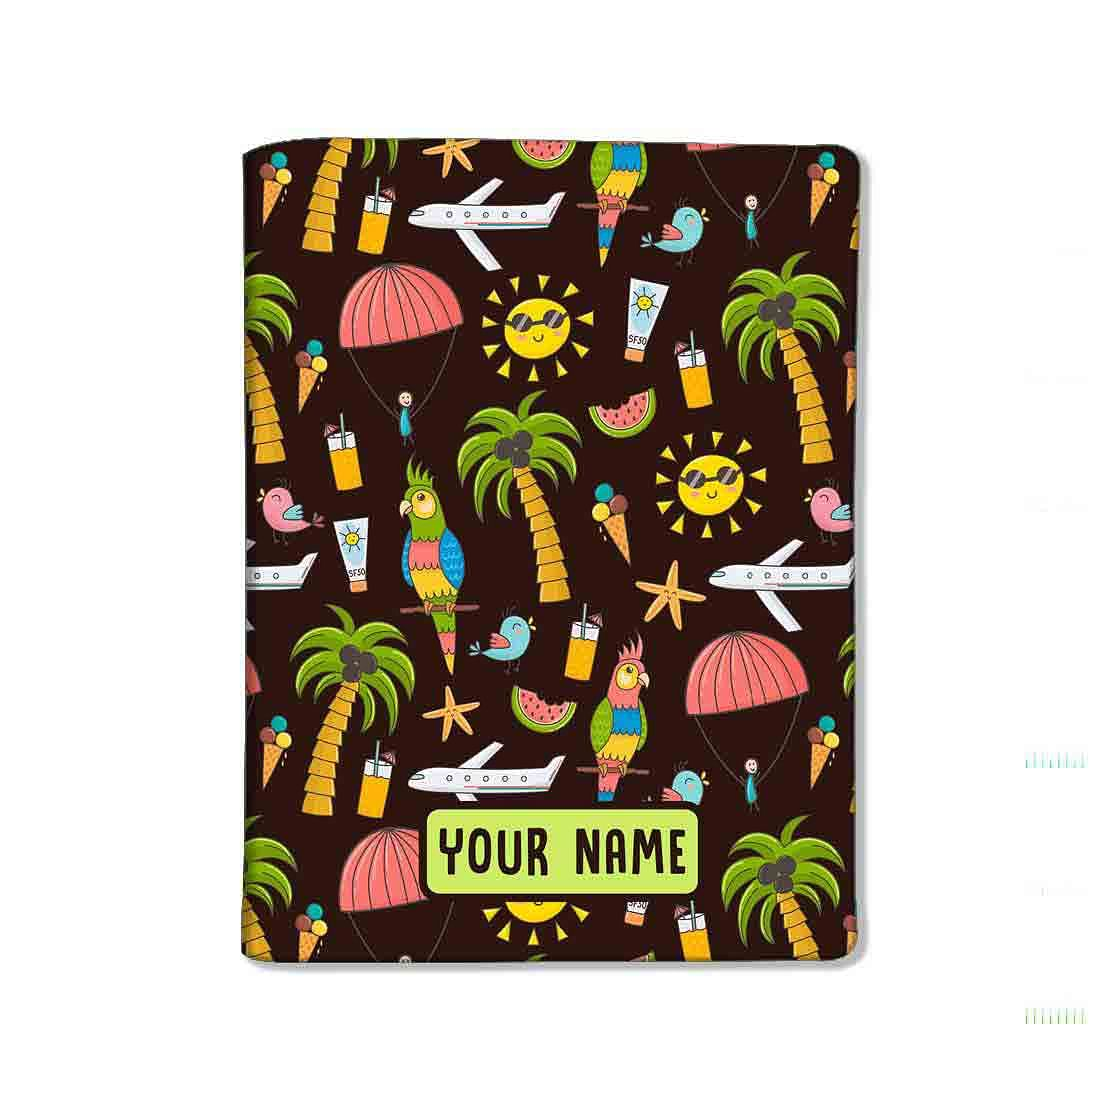 Customized Travel Document Holder  -Summer Adventure - Nutcase